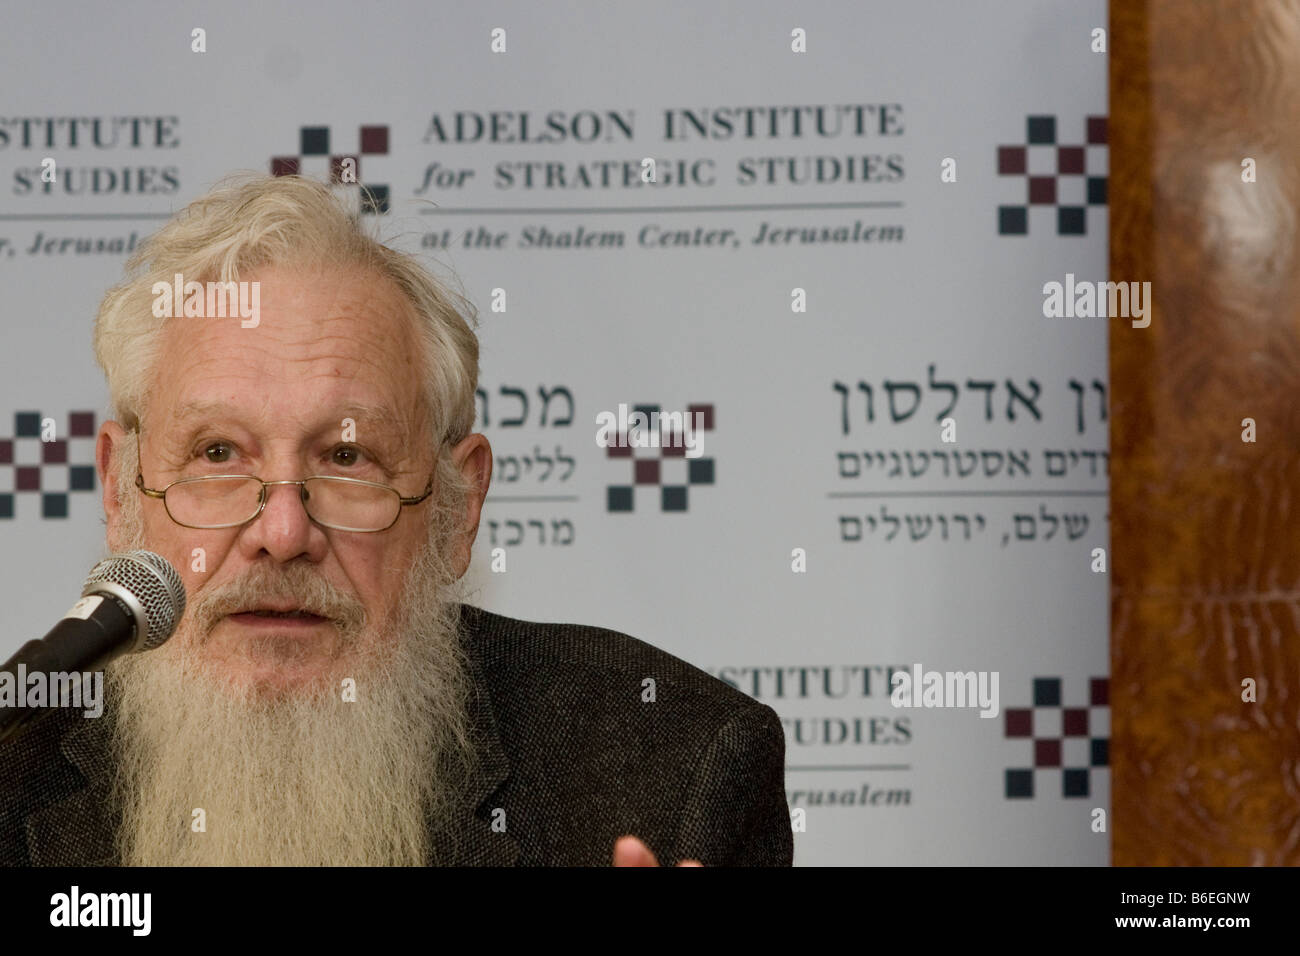 Noble prize winner Prof. Robert Aumann speaks at the Adelson Institute's Dec. 2008 Counterinsurgency conference. Stock Photo